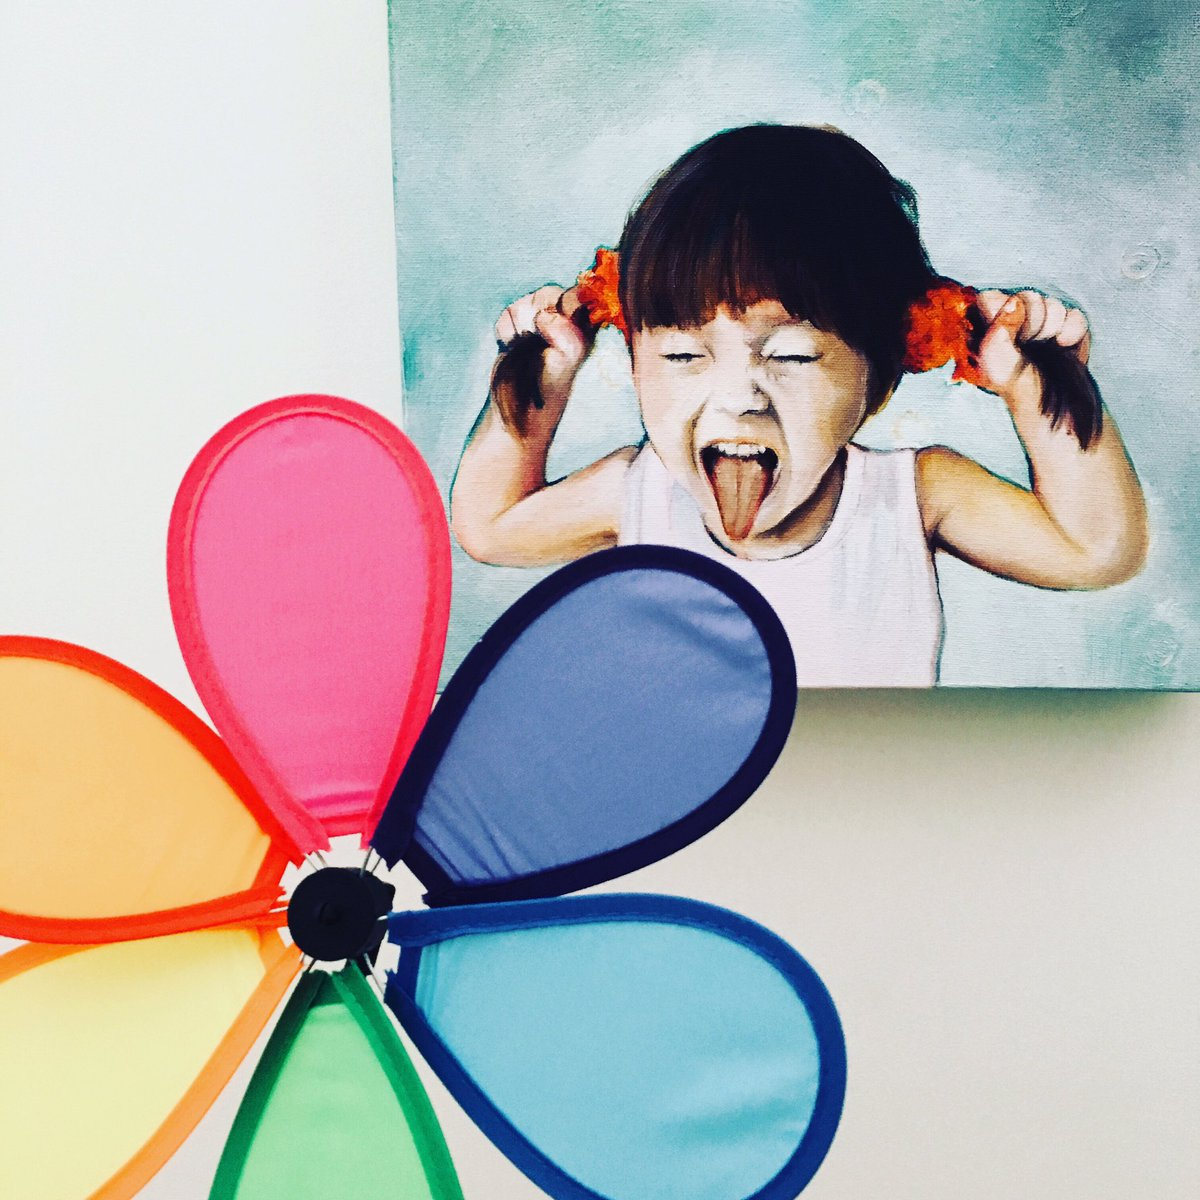 In honour of #hamiltonartsweek (June 14-21) and #pridemonth, we are sharing #flowerpower images of our inclusive art collection, with a little rainbow of colour added! #safespace #safe #lgbtq #lgbtq2s+ #pride #wellwood @HamArtsCouncil #amandaimmurs  #HamOnt #pridemonth2019 #pride